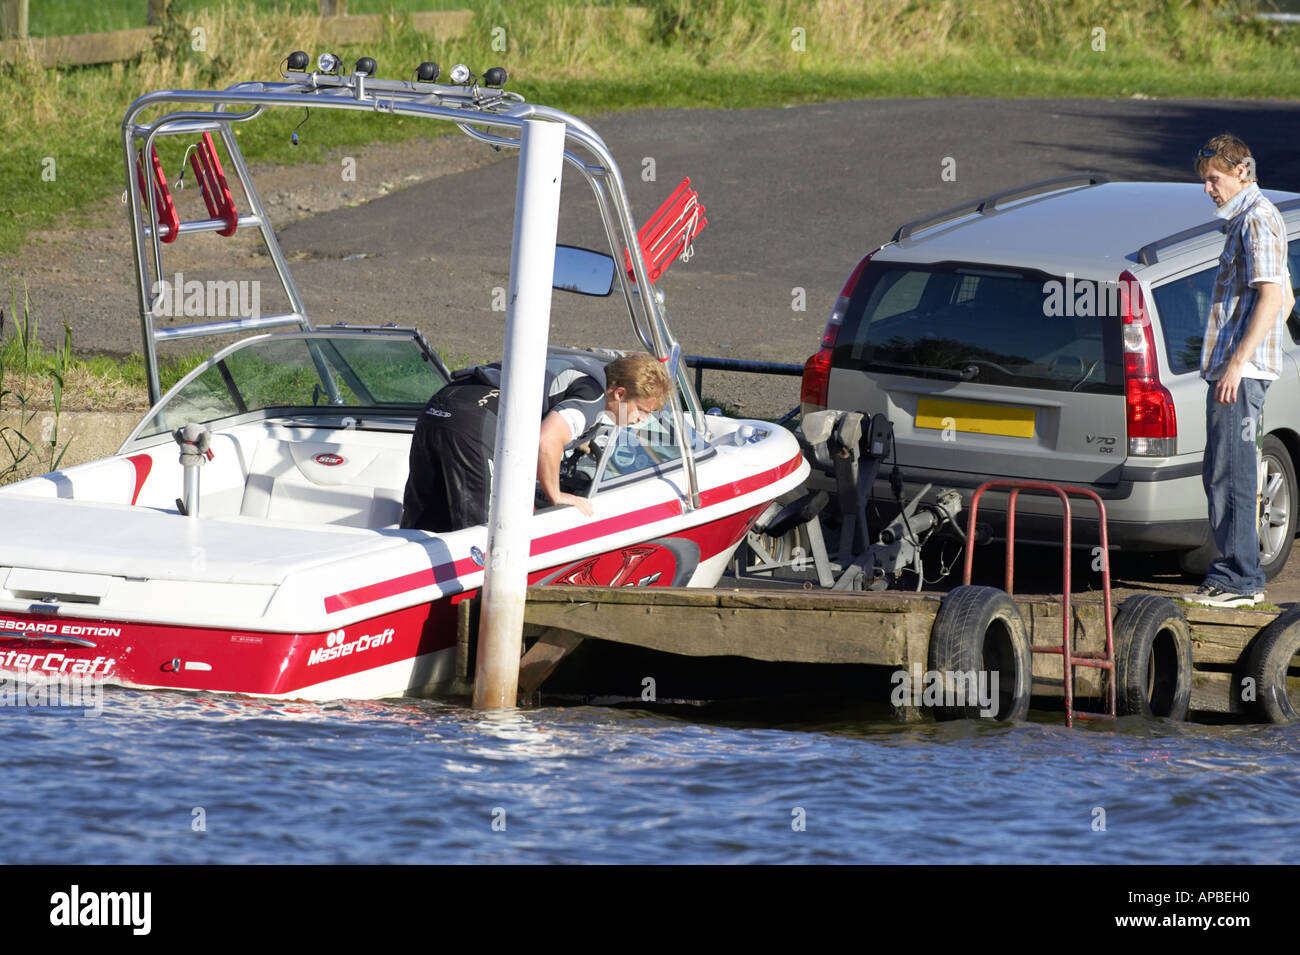 men loading a mastercraft x star wakeboard edition speed boat onto the back of a trailer attached to a volvo estate car on a jet - Stock Image